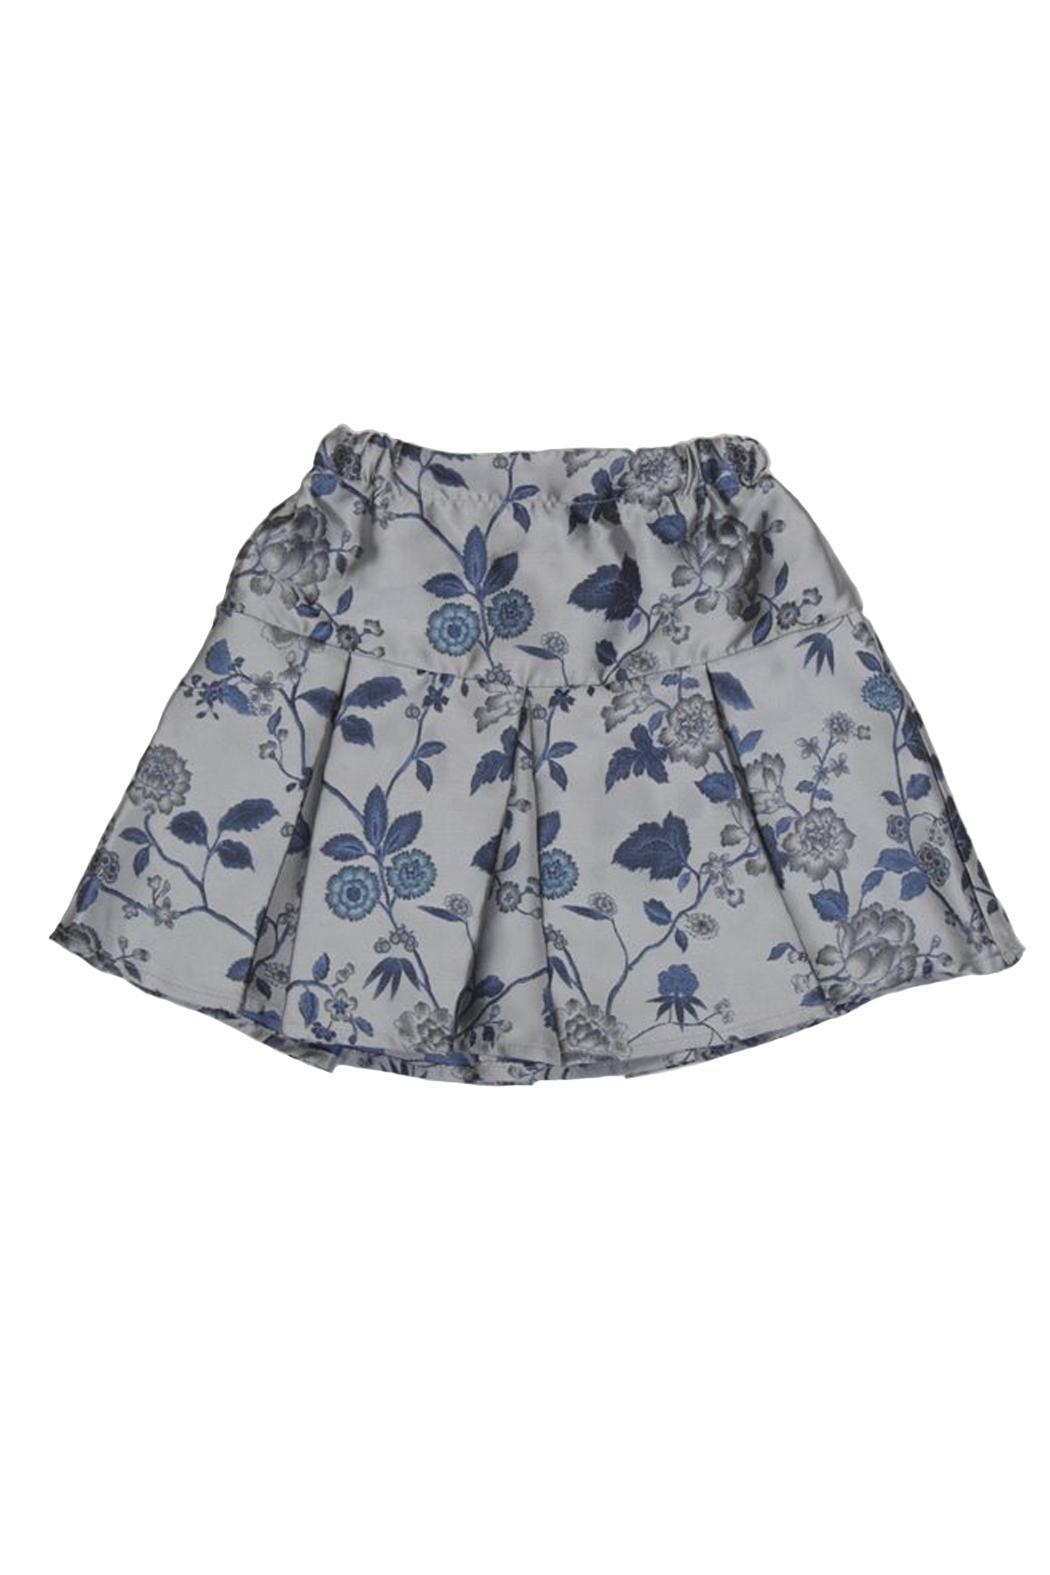 Malvi & Co. Damask Skirt. - Main Image